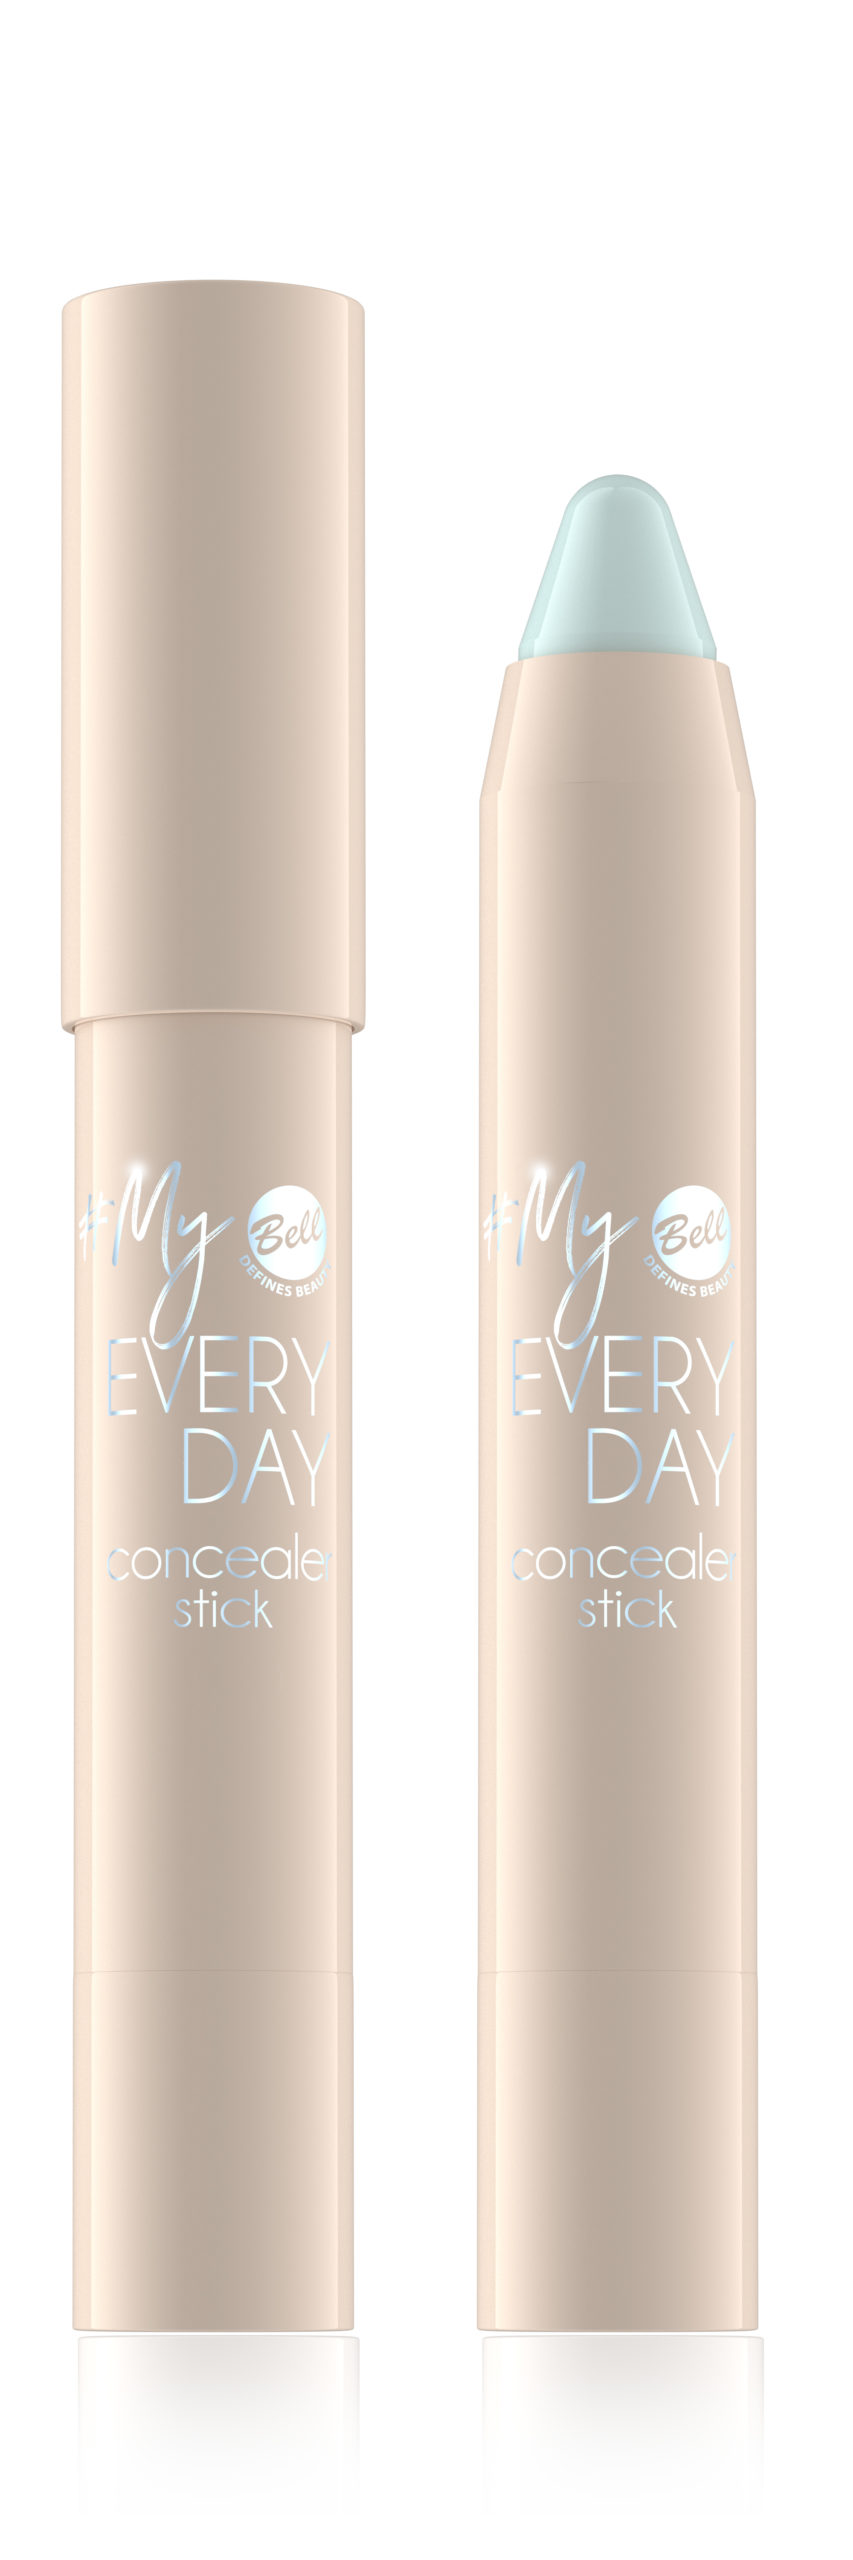 #My Everyday Concealer Stick